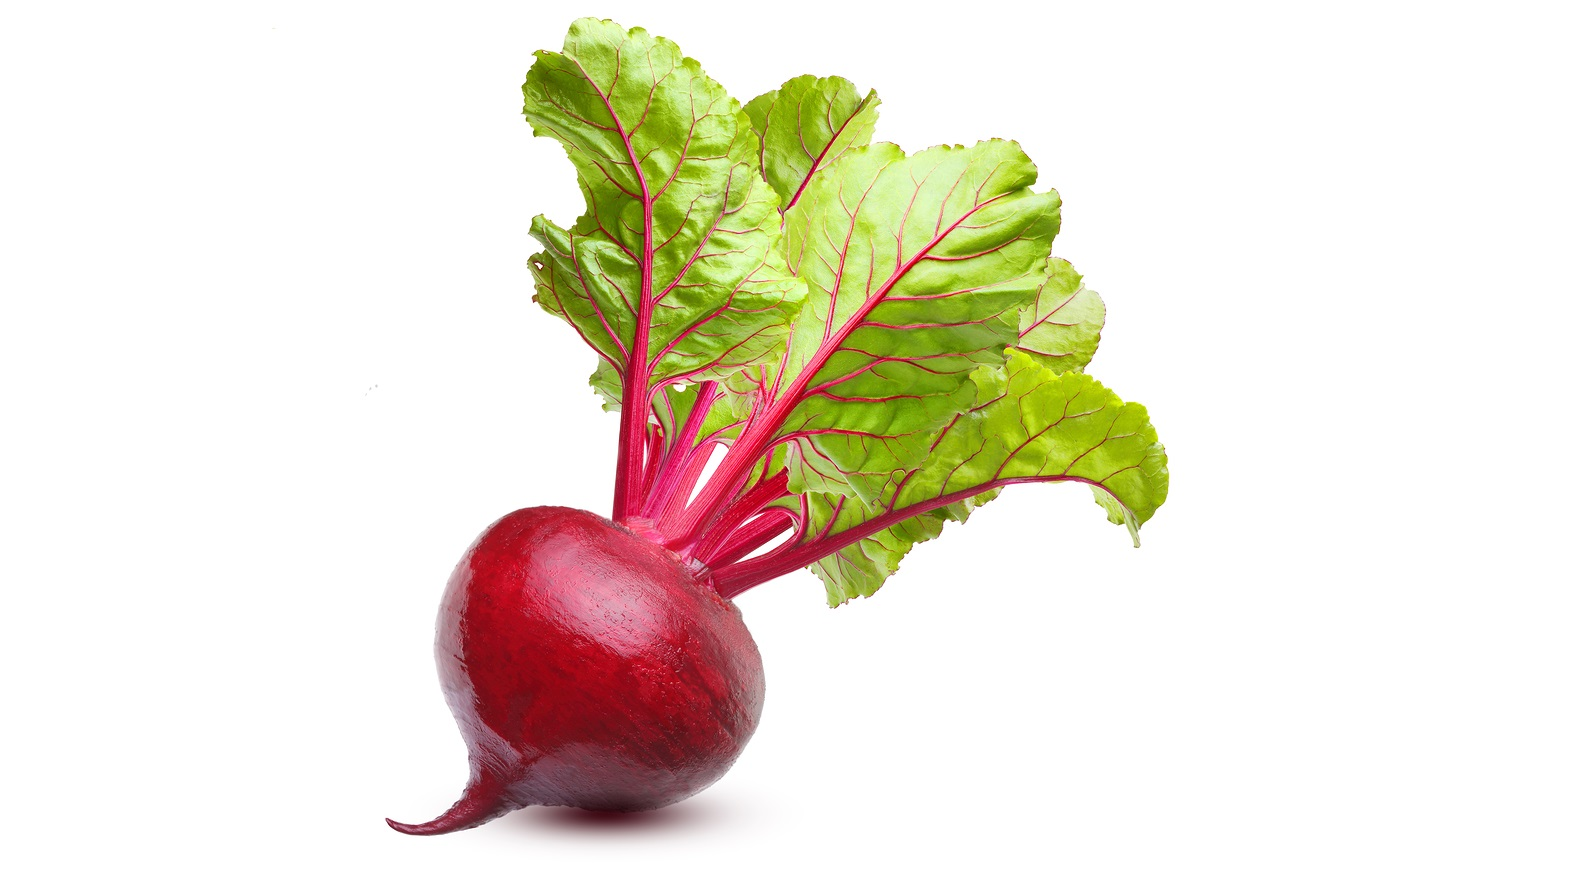 Health Benefits of Red Beets - Good Whole Food